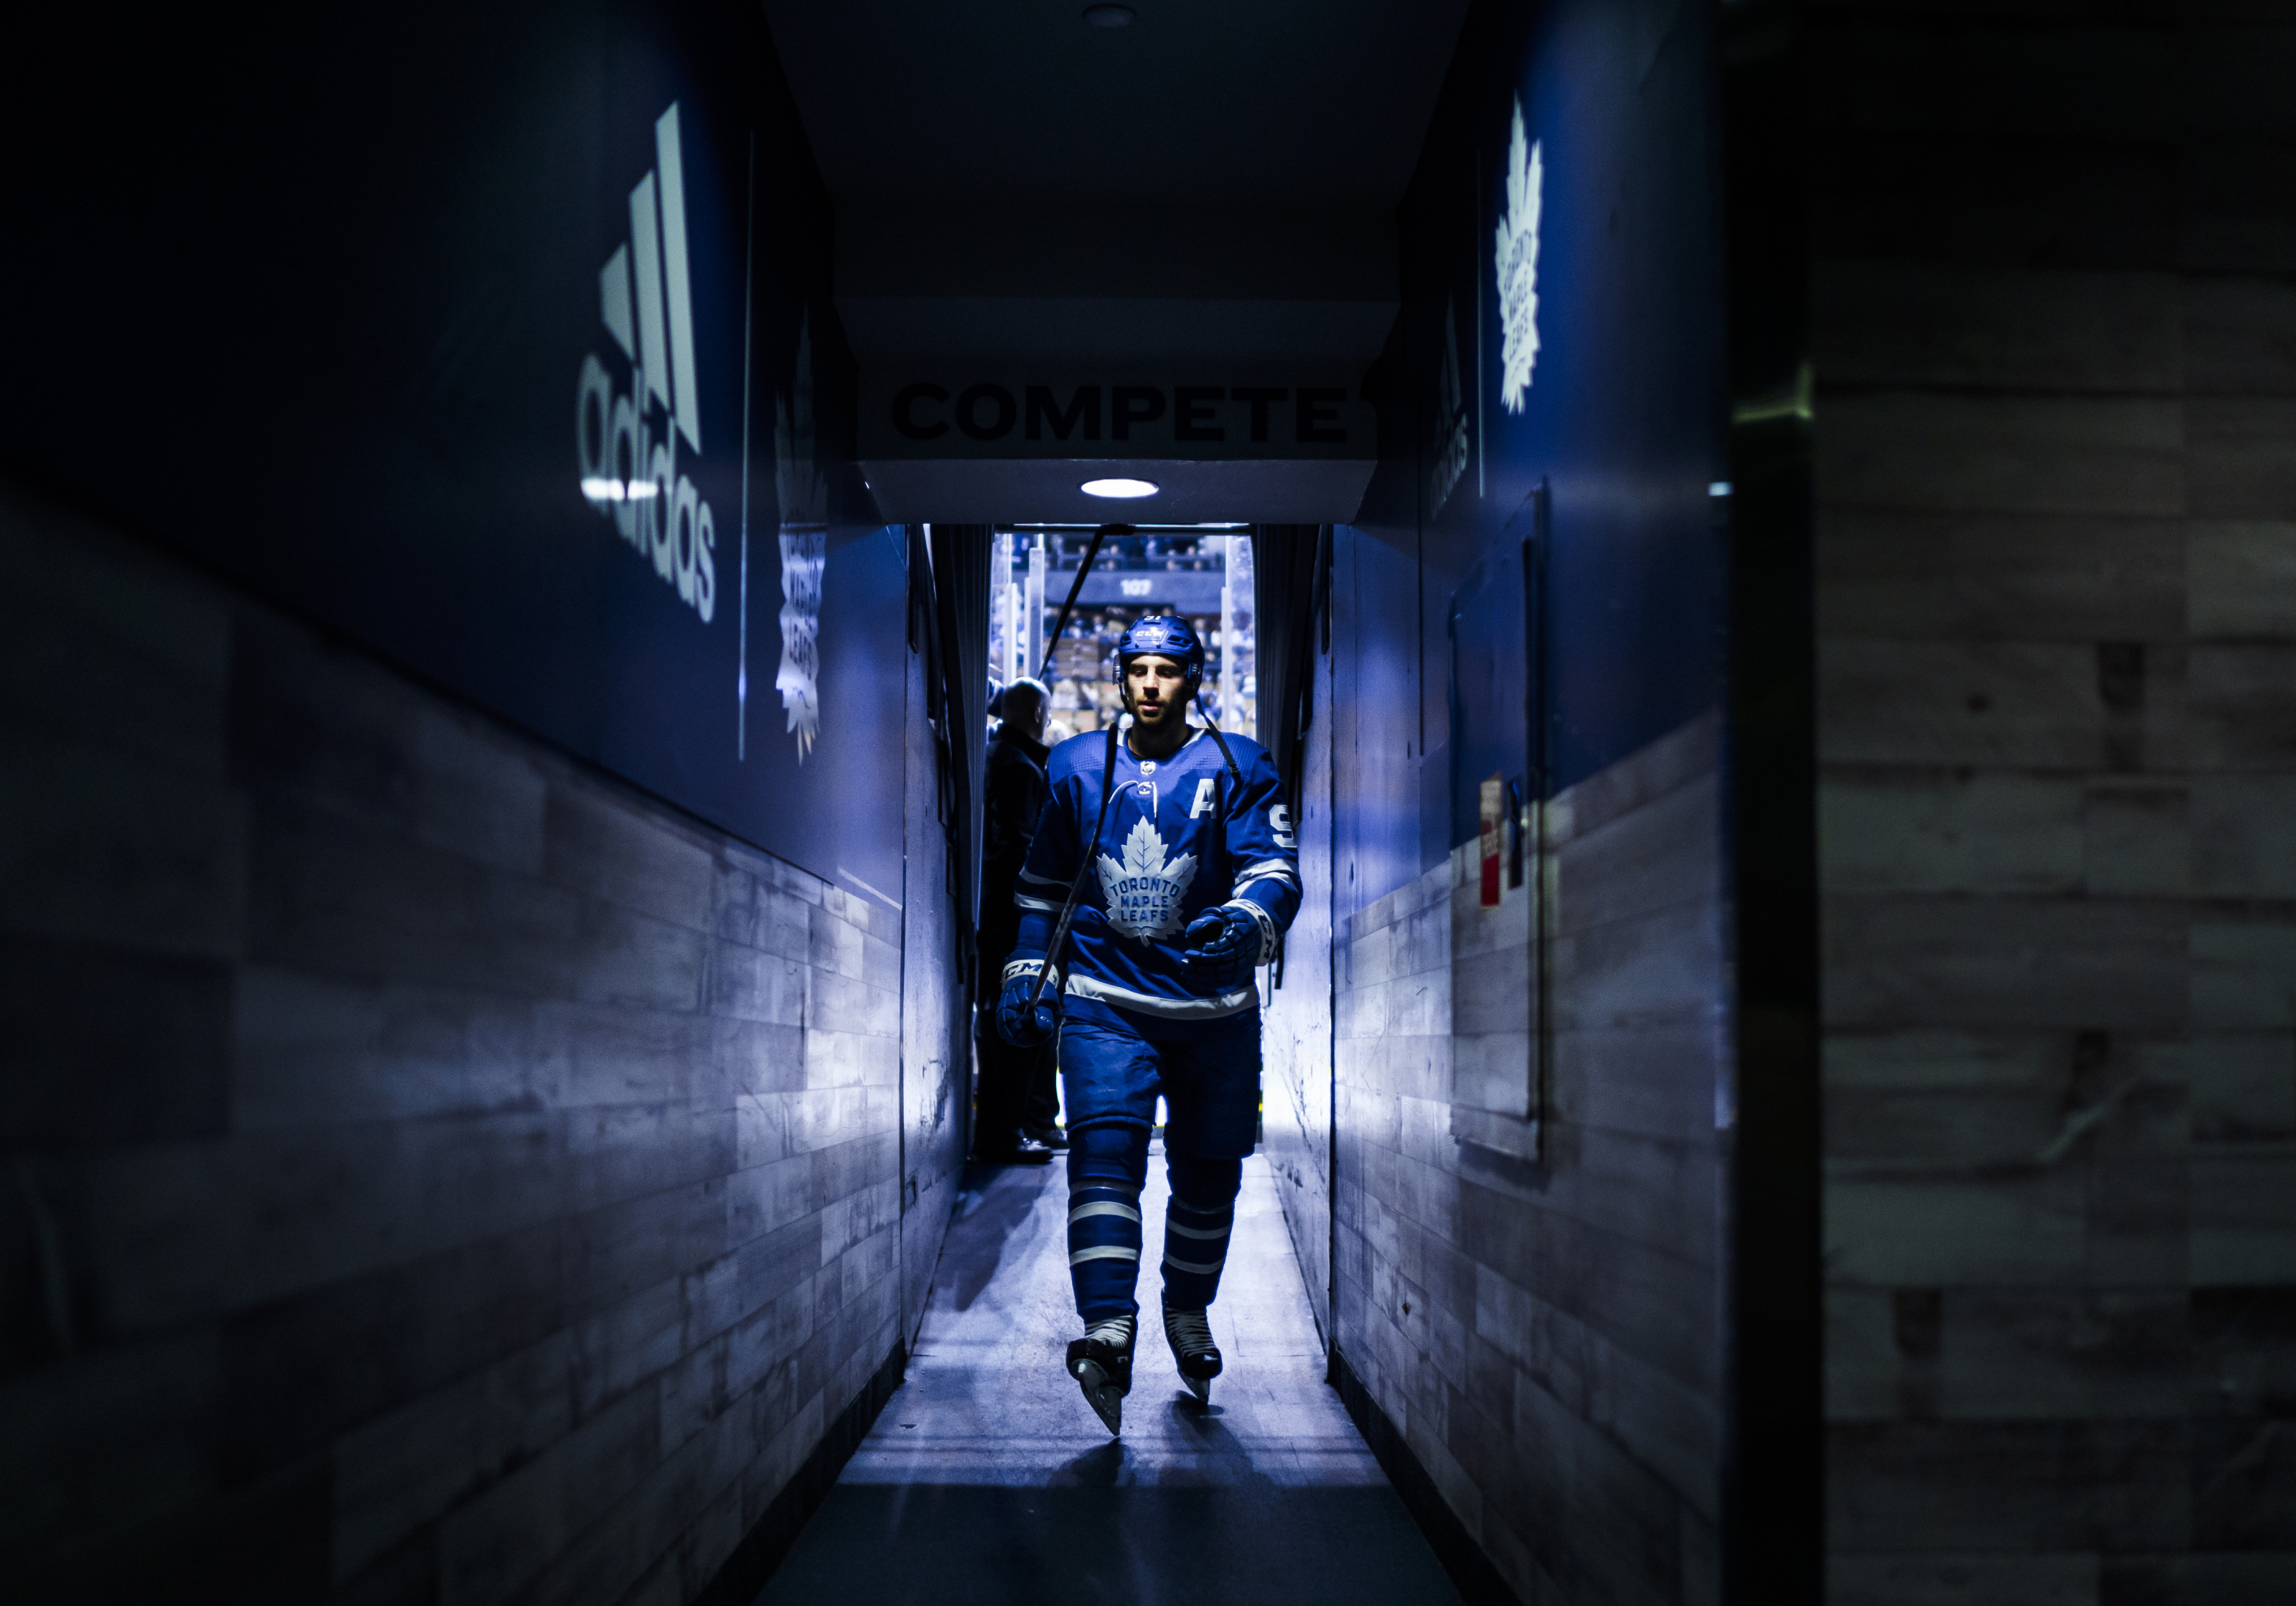 Toronto Maple Leafs Need Players Who Bleed Blue or Be Gone